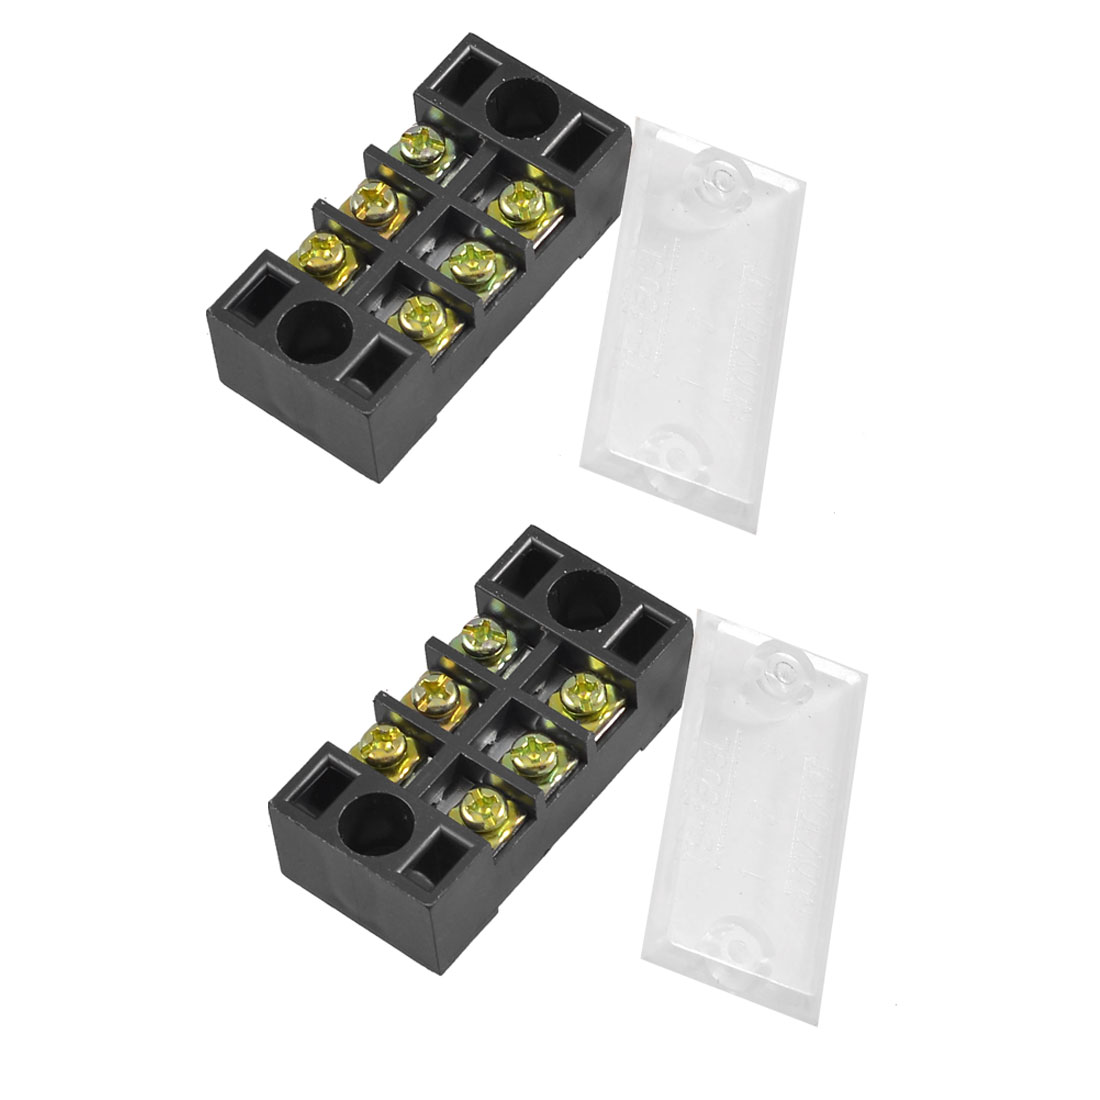 2 Pcs Dual Rows 3 Positions 3P Terminal Blocks Barrier 600V 15A